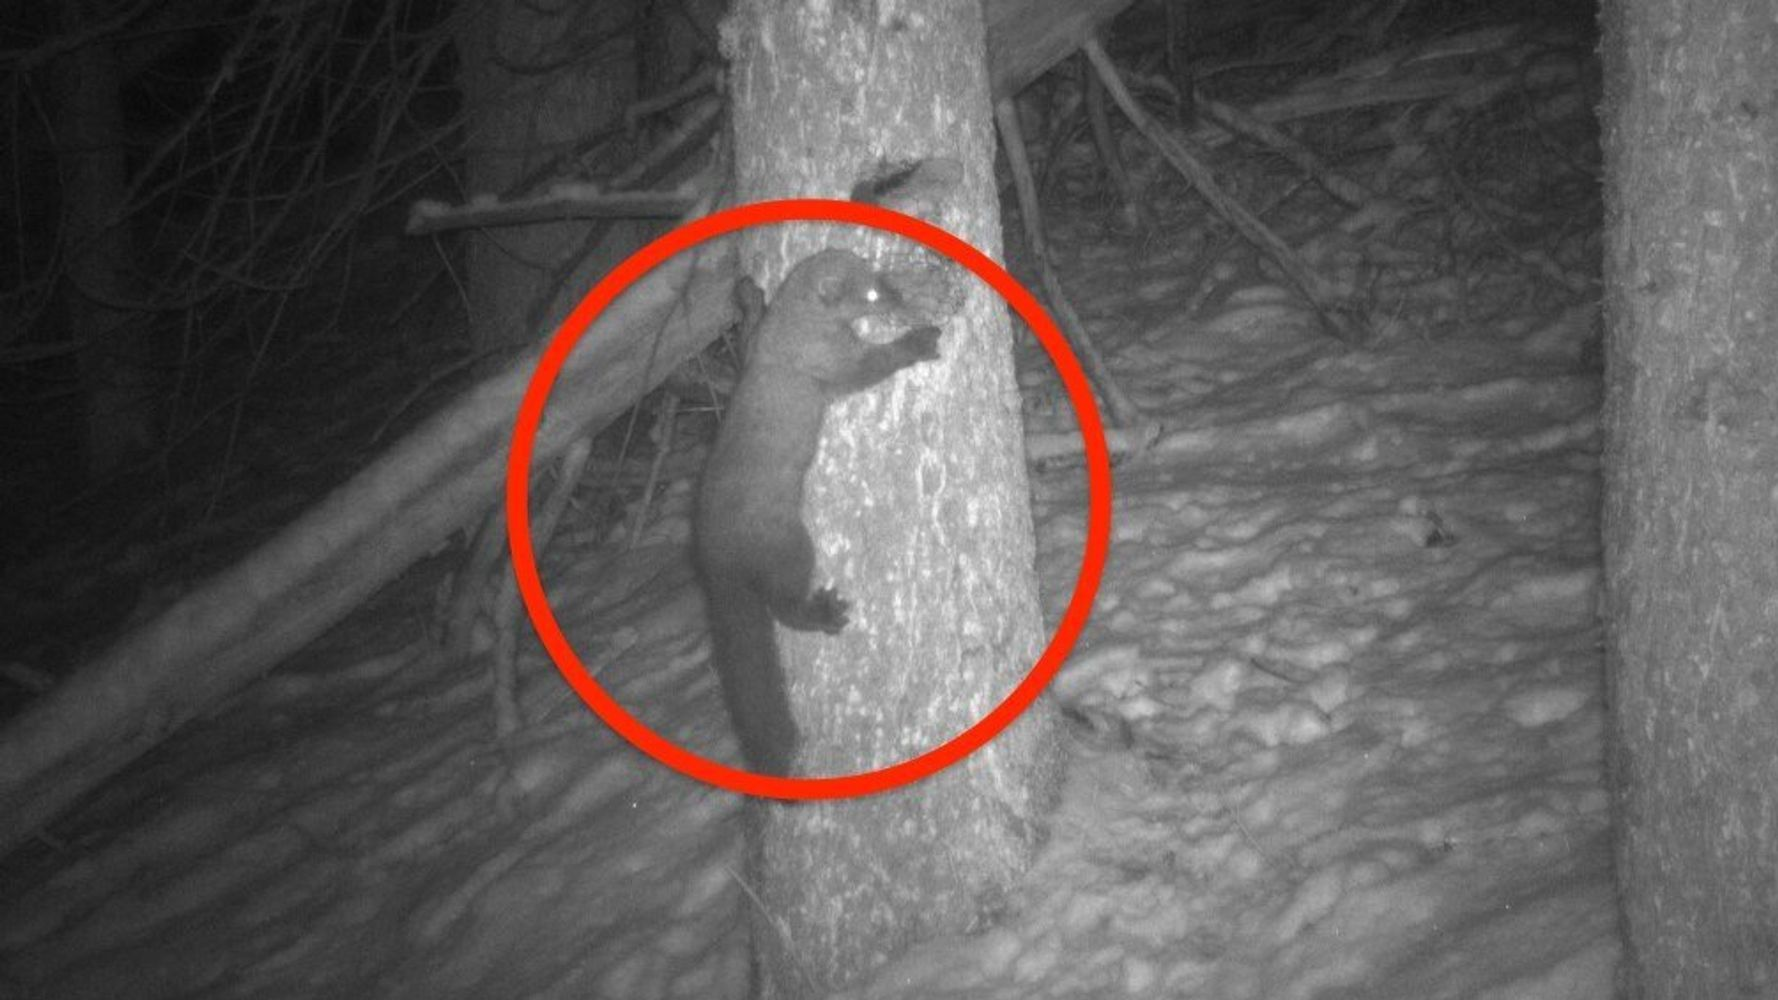 Rare Sighting In Yosemite: Trail Camera Captures Adorable And Elusive Fisher